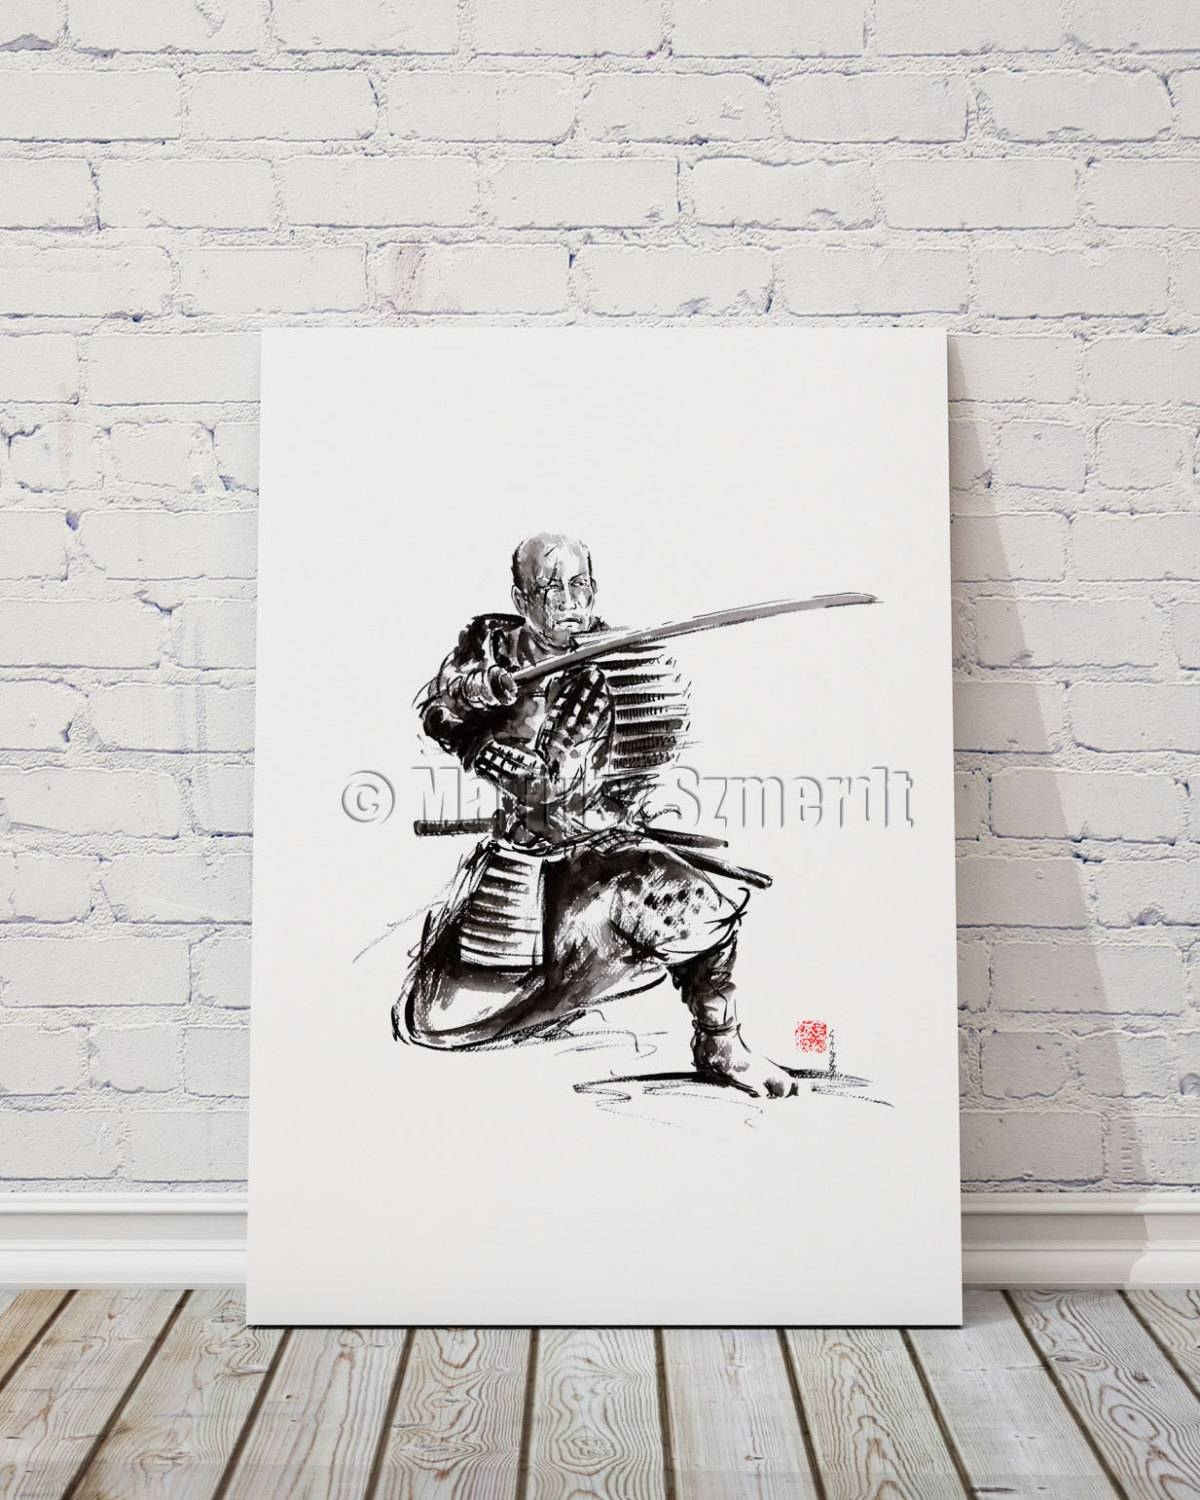 Samurai Art Print Samurai Sword Japan Poster Japan Within Best And Newest Samurai Wall Art (View 9 of 20)